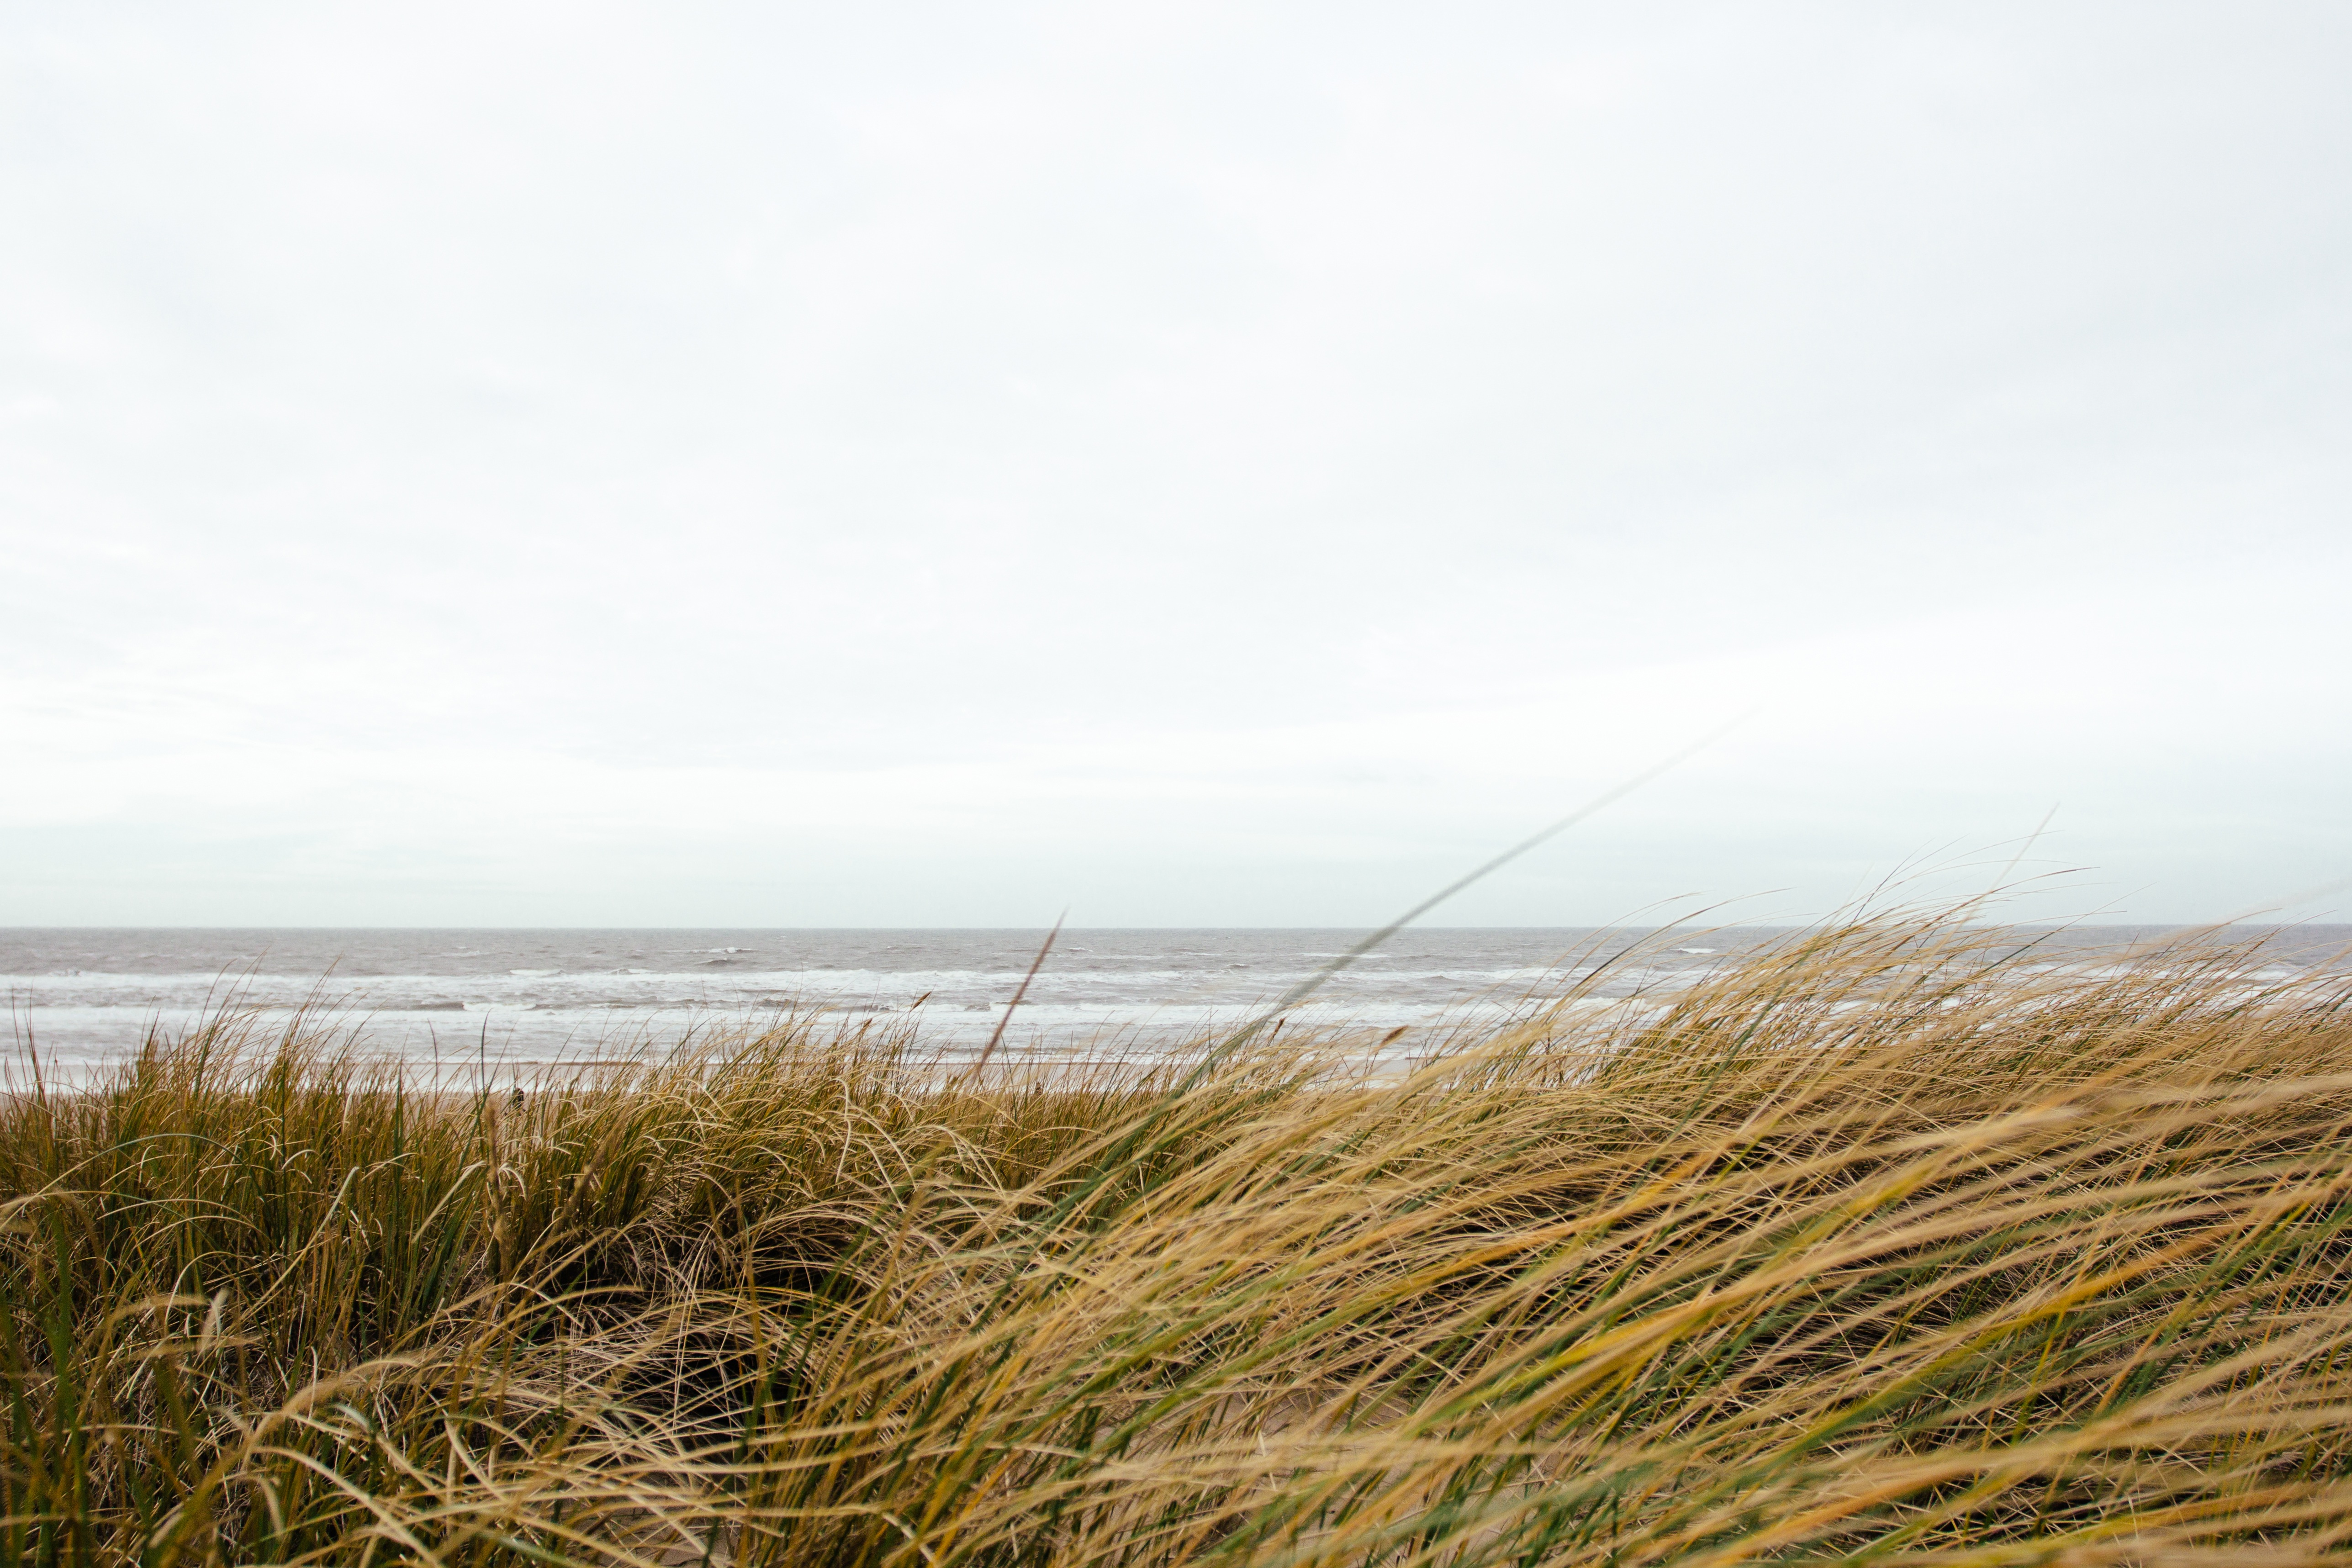 Grass, cold, sea, beach, cloudy, lonely, melancholy